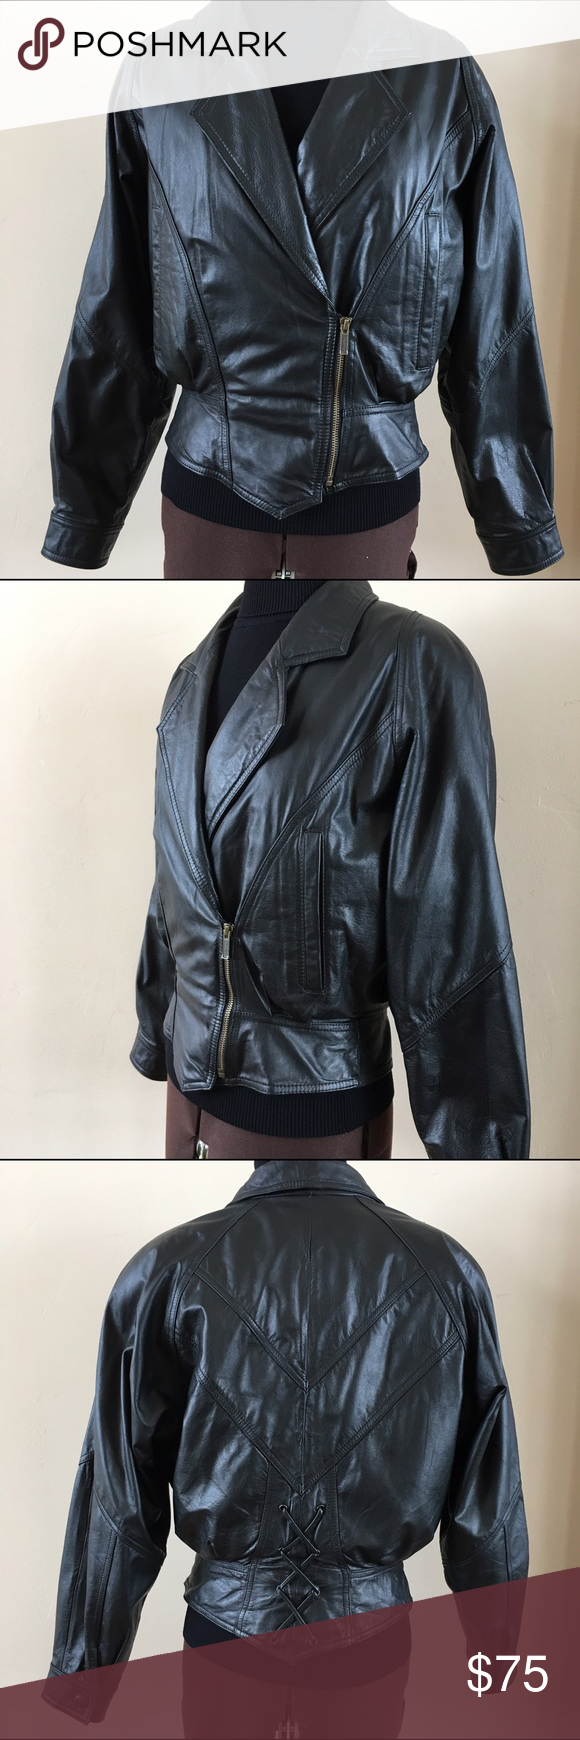 WILSONS LEATHER MOTO JACKET WITH THINSULATE LINING Black